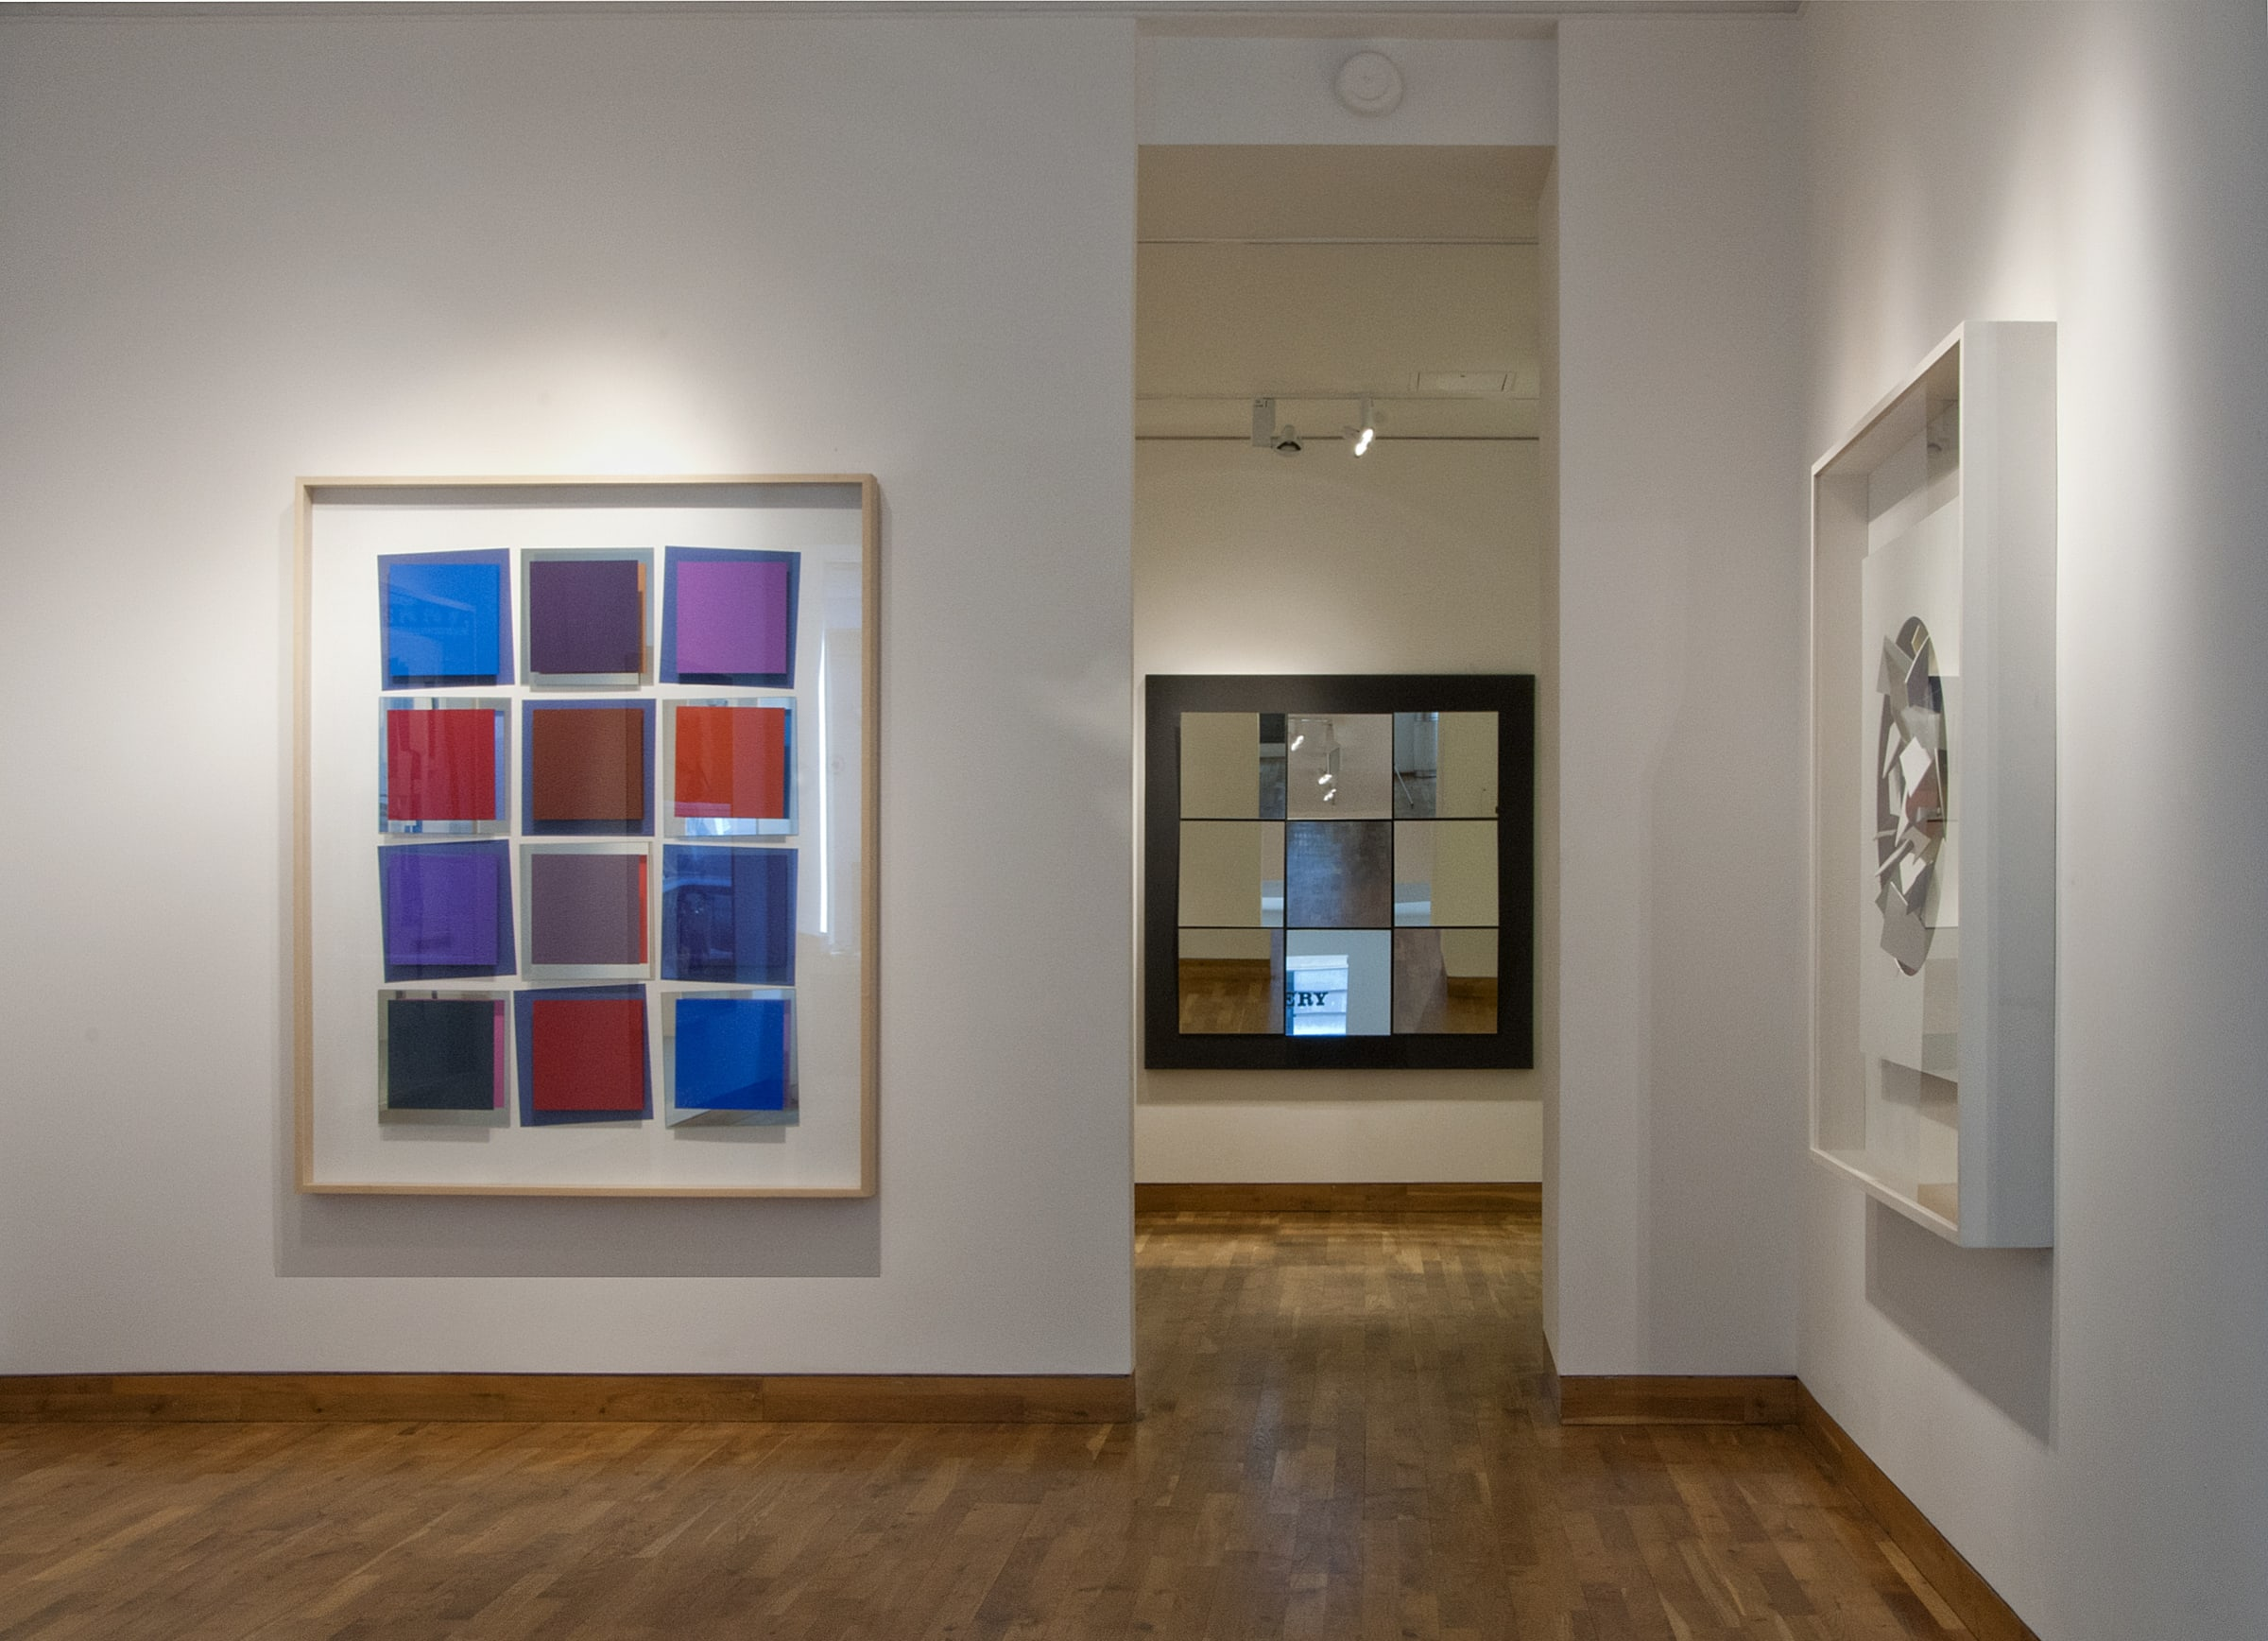 """<span class=""""link fancybox-details-link""""><a href=""""/exhibitions/75/works/image_standalone221/"""">View Detail Page</a></span><p>CHRISTIAN MEGERT   A NEW SPACE   11 JAN - 24 FEB 2012  Installation View</p>"""